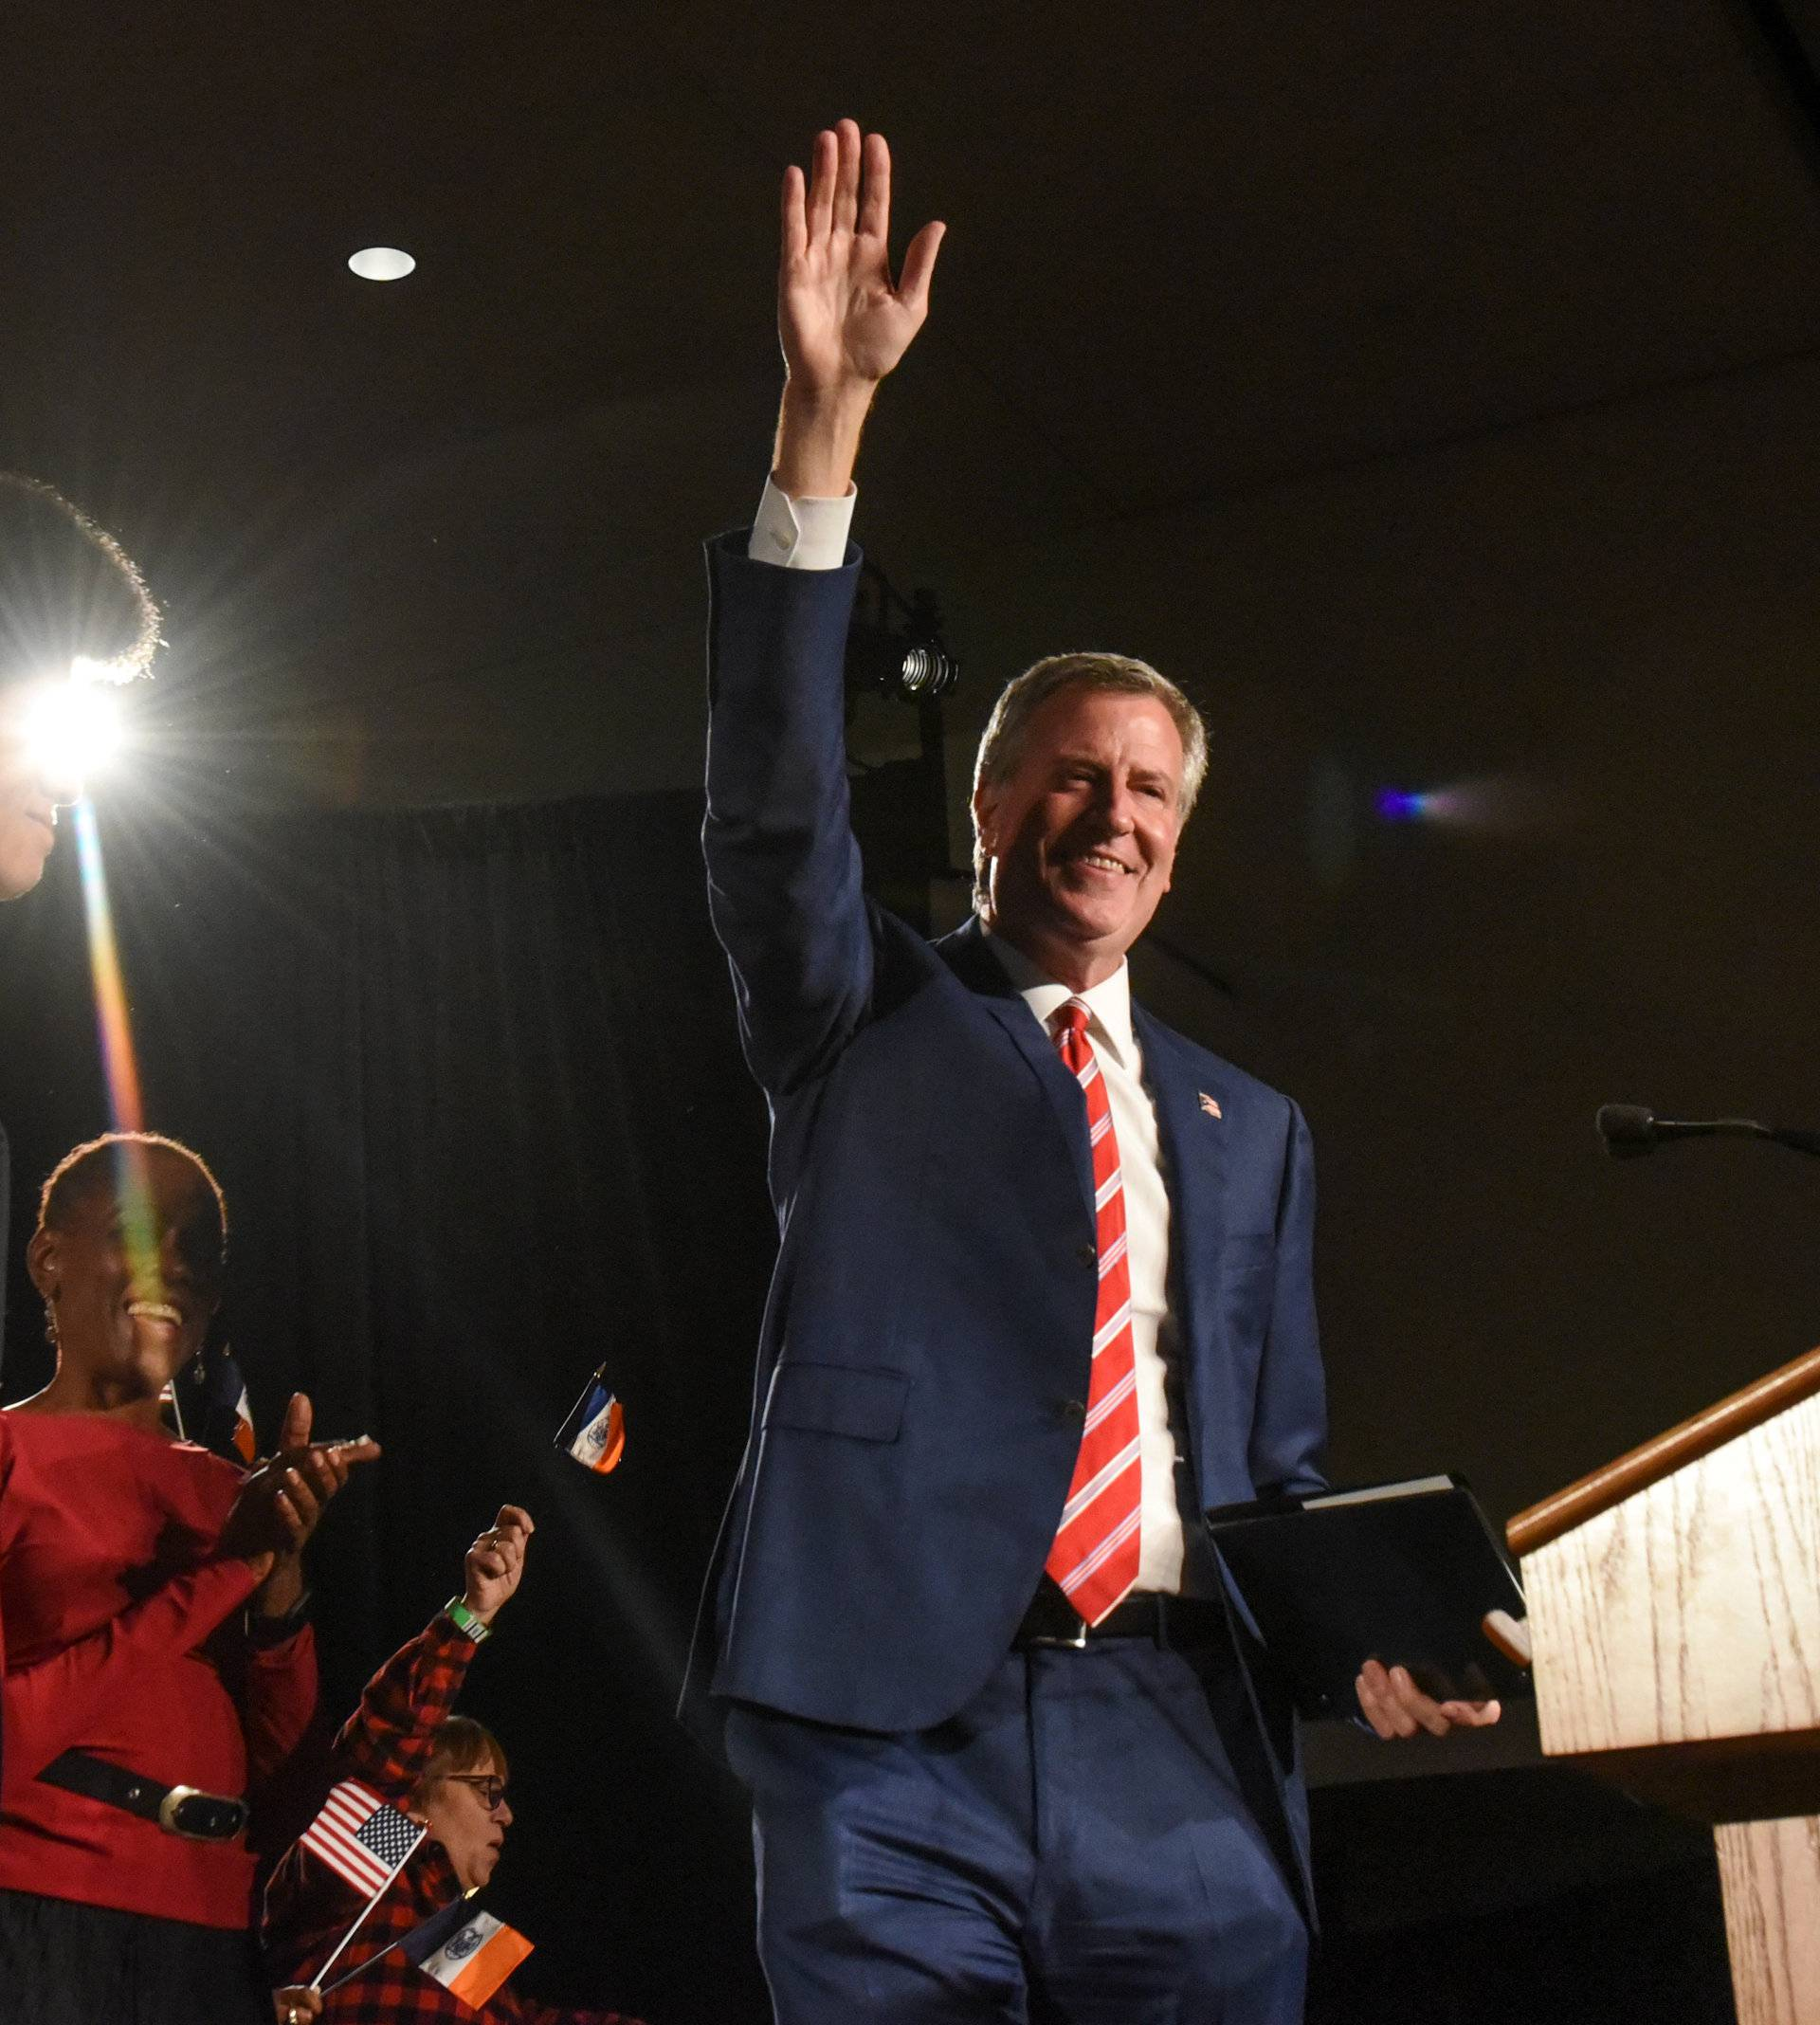 New York Mayor Bill de Blasio is greeted by supporters after his re-election in New York City